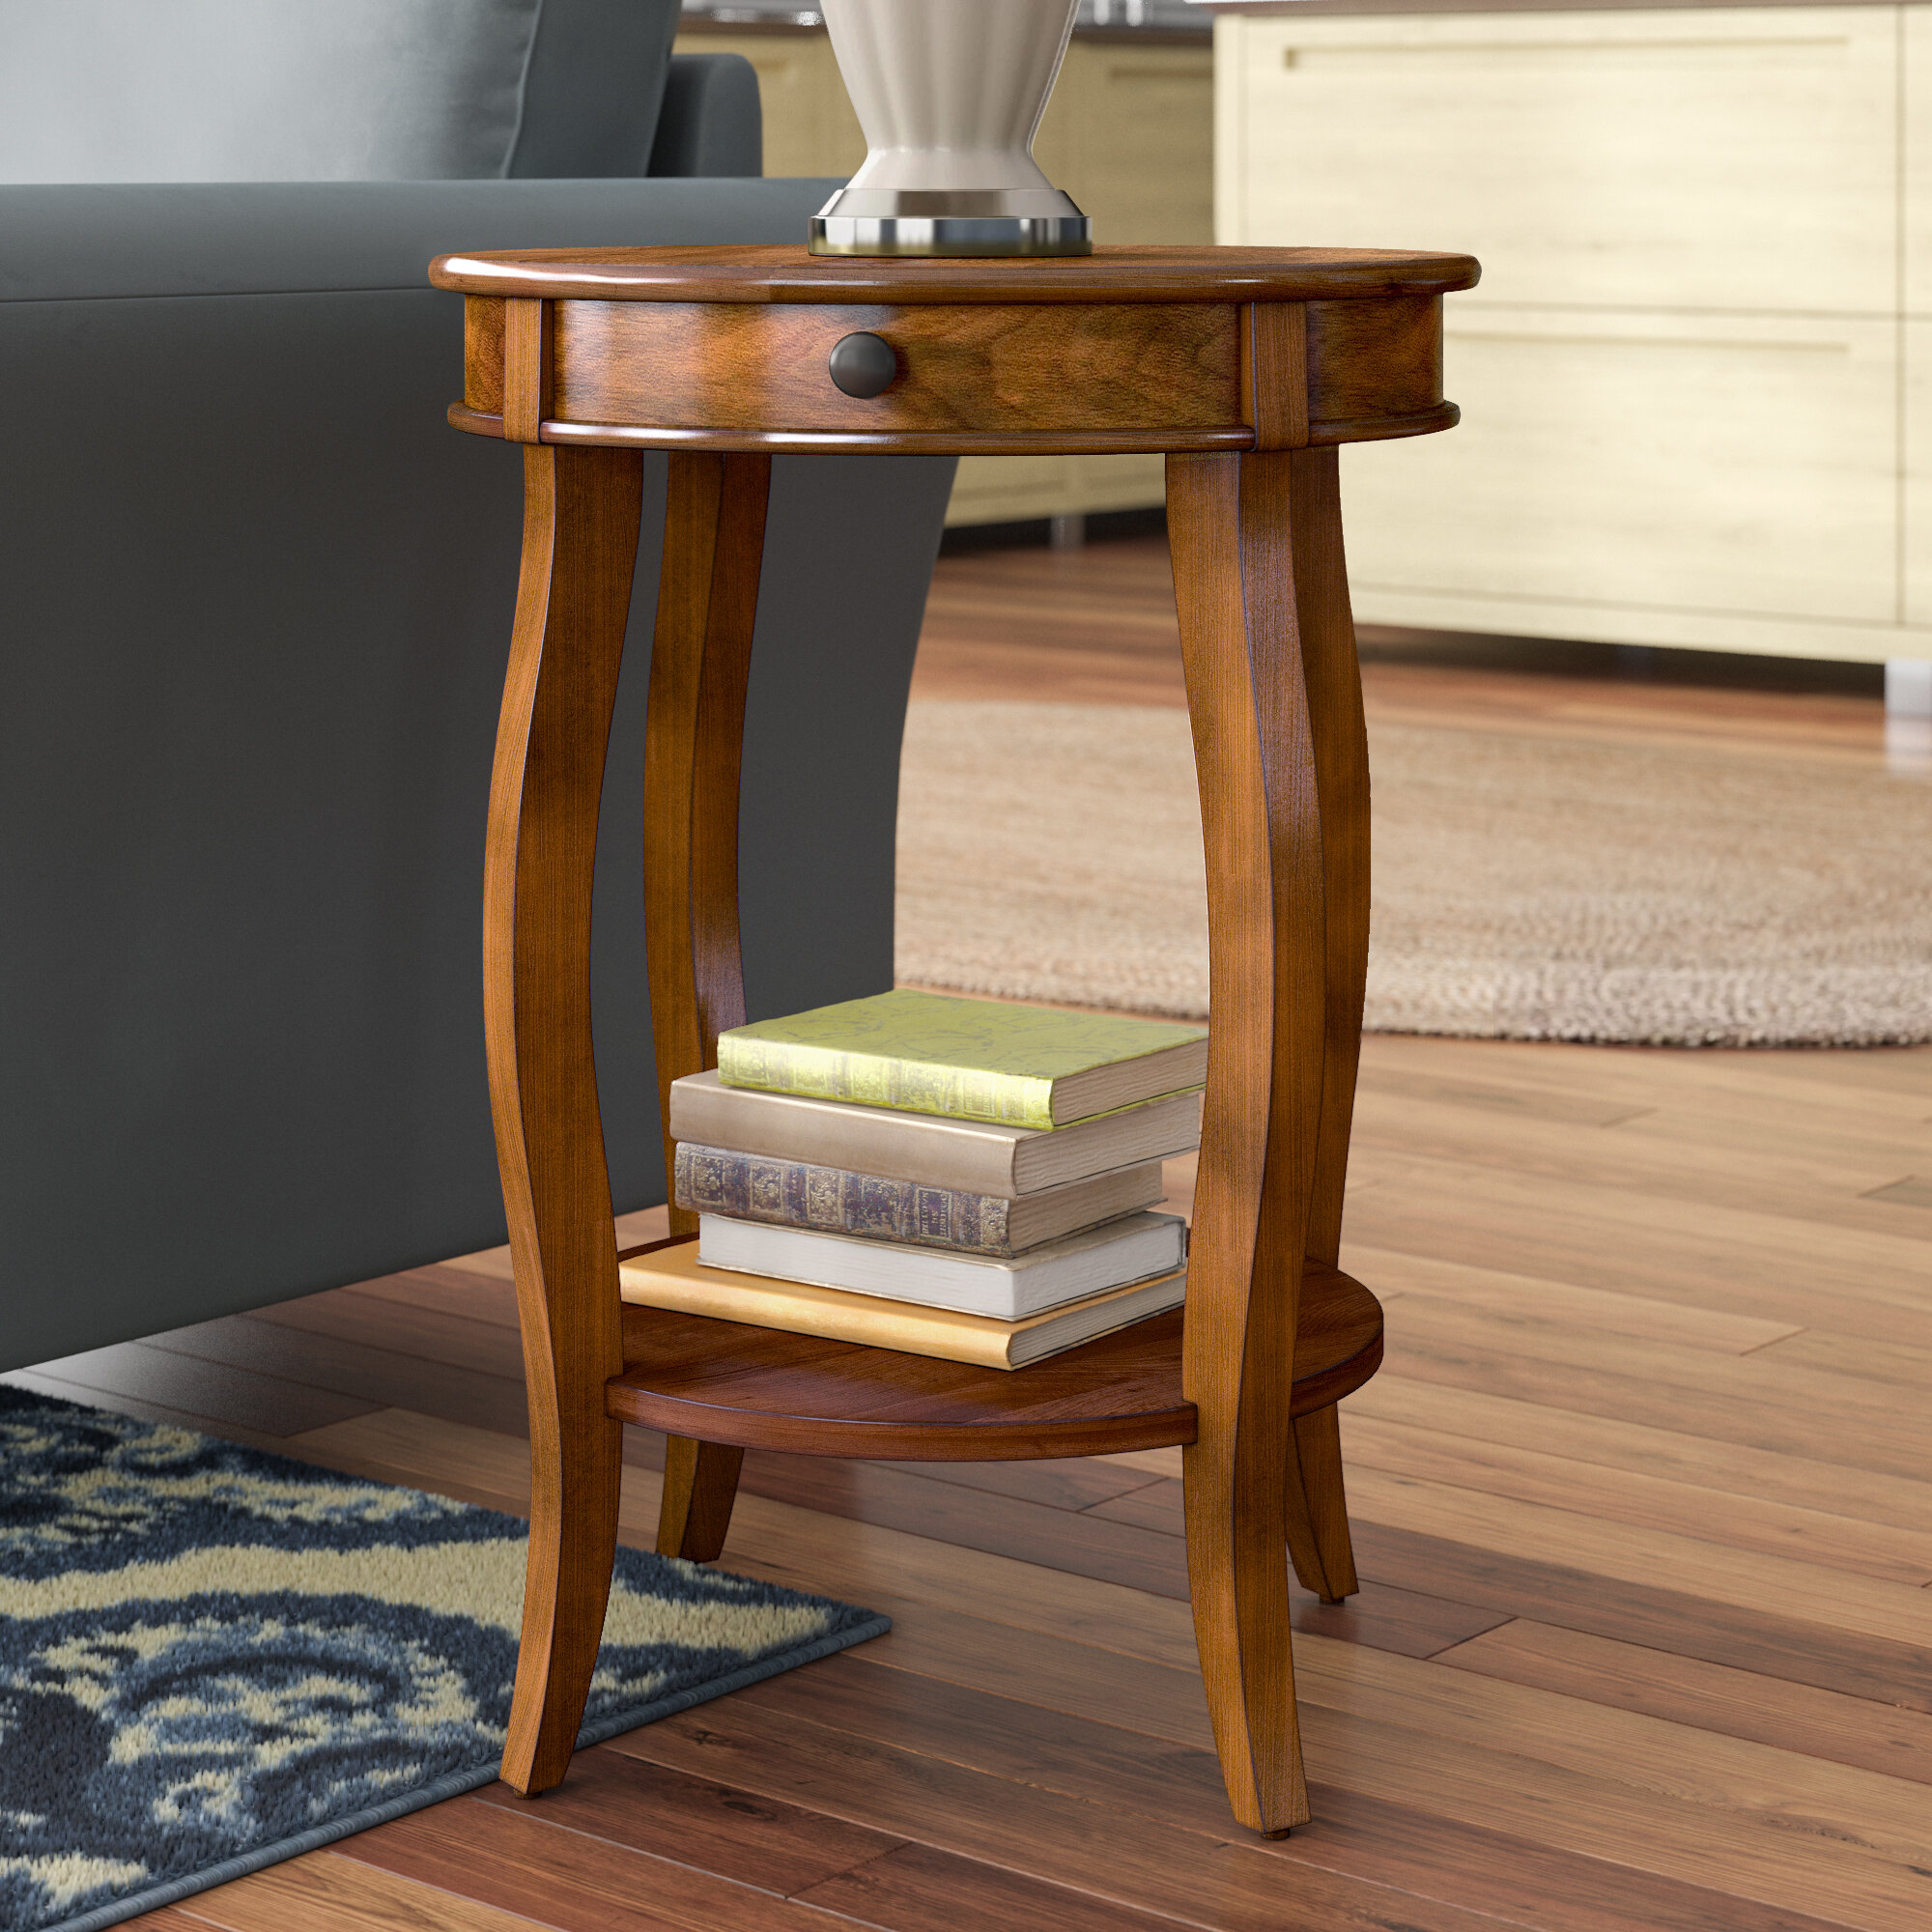 Charlton home shropshire end table with storage reviews wayfair